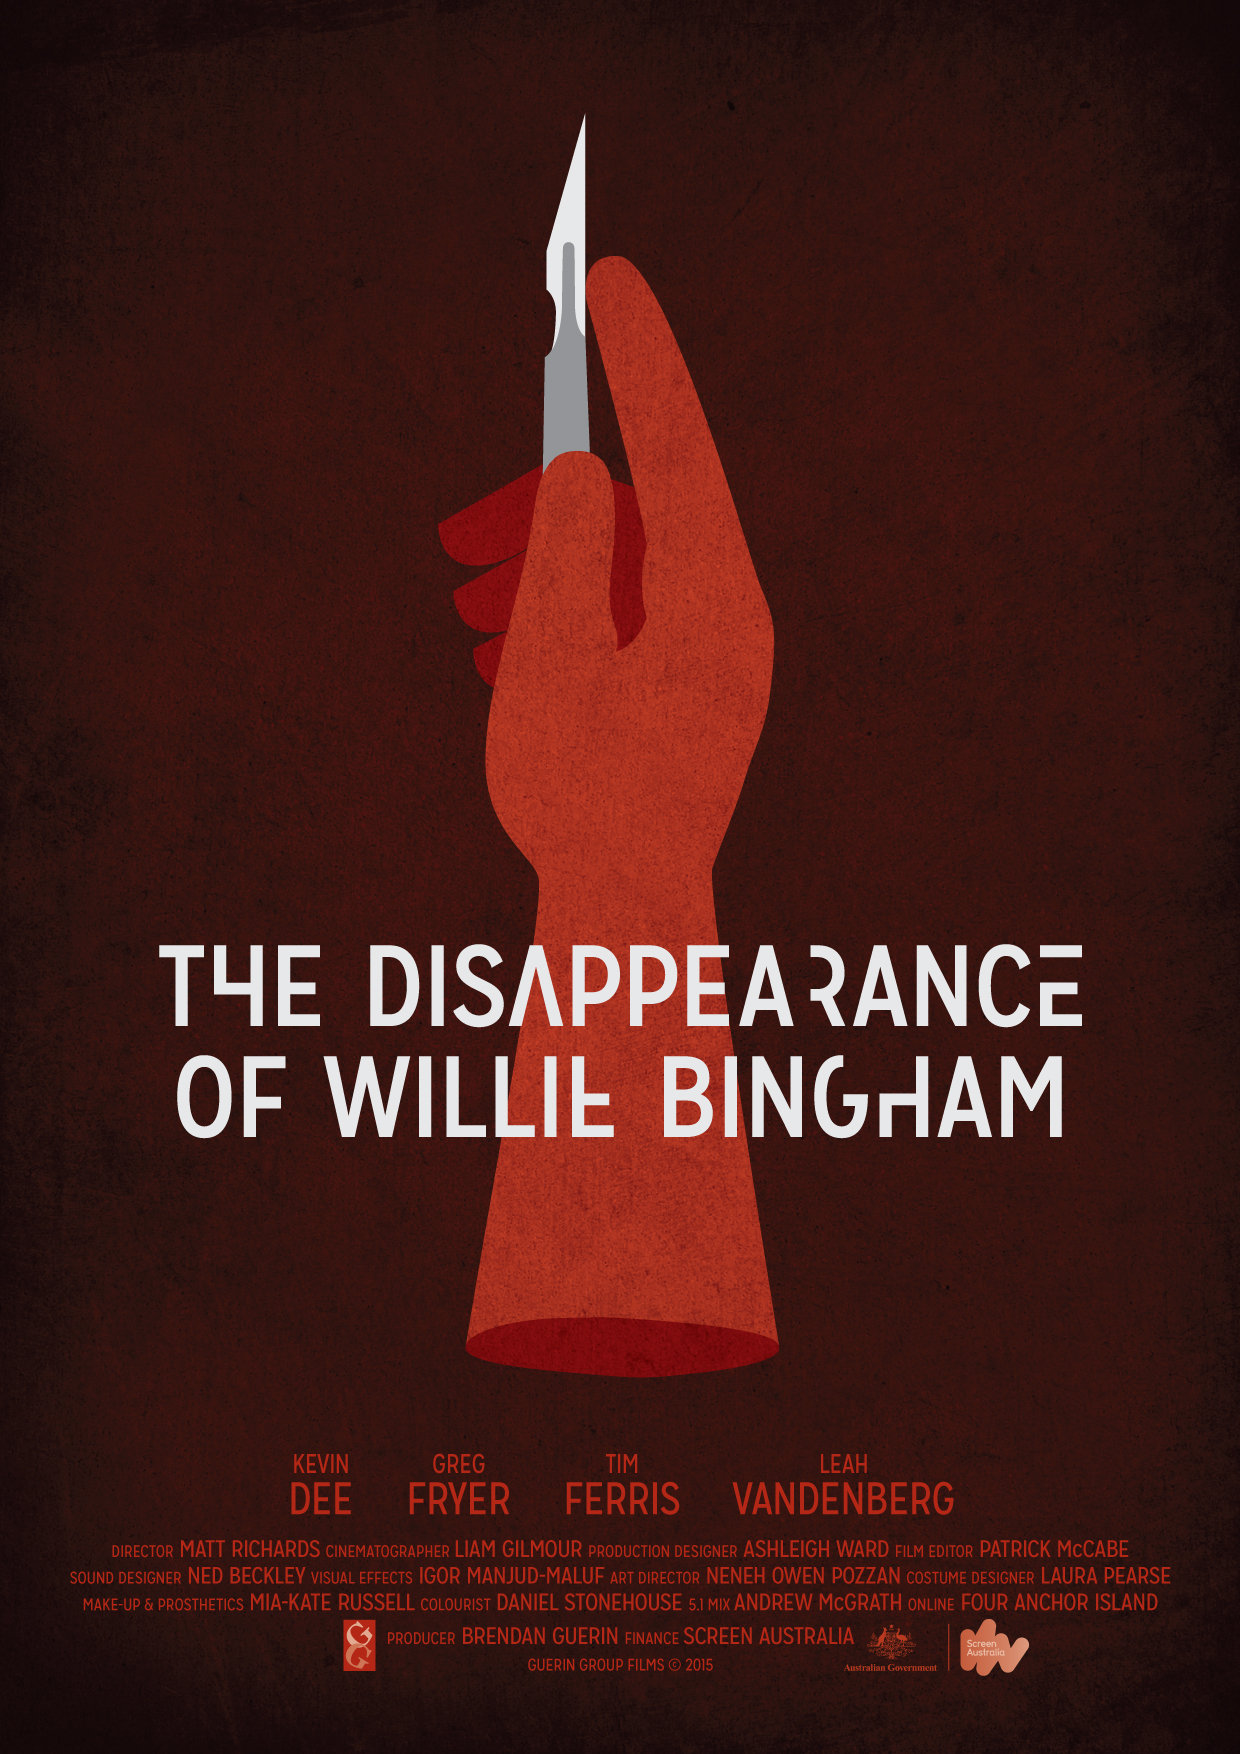 The Disappearance of Willie Bingham kapak